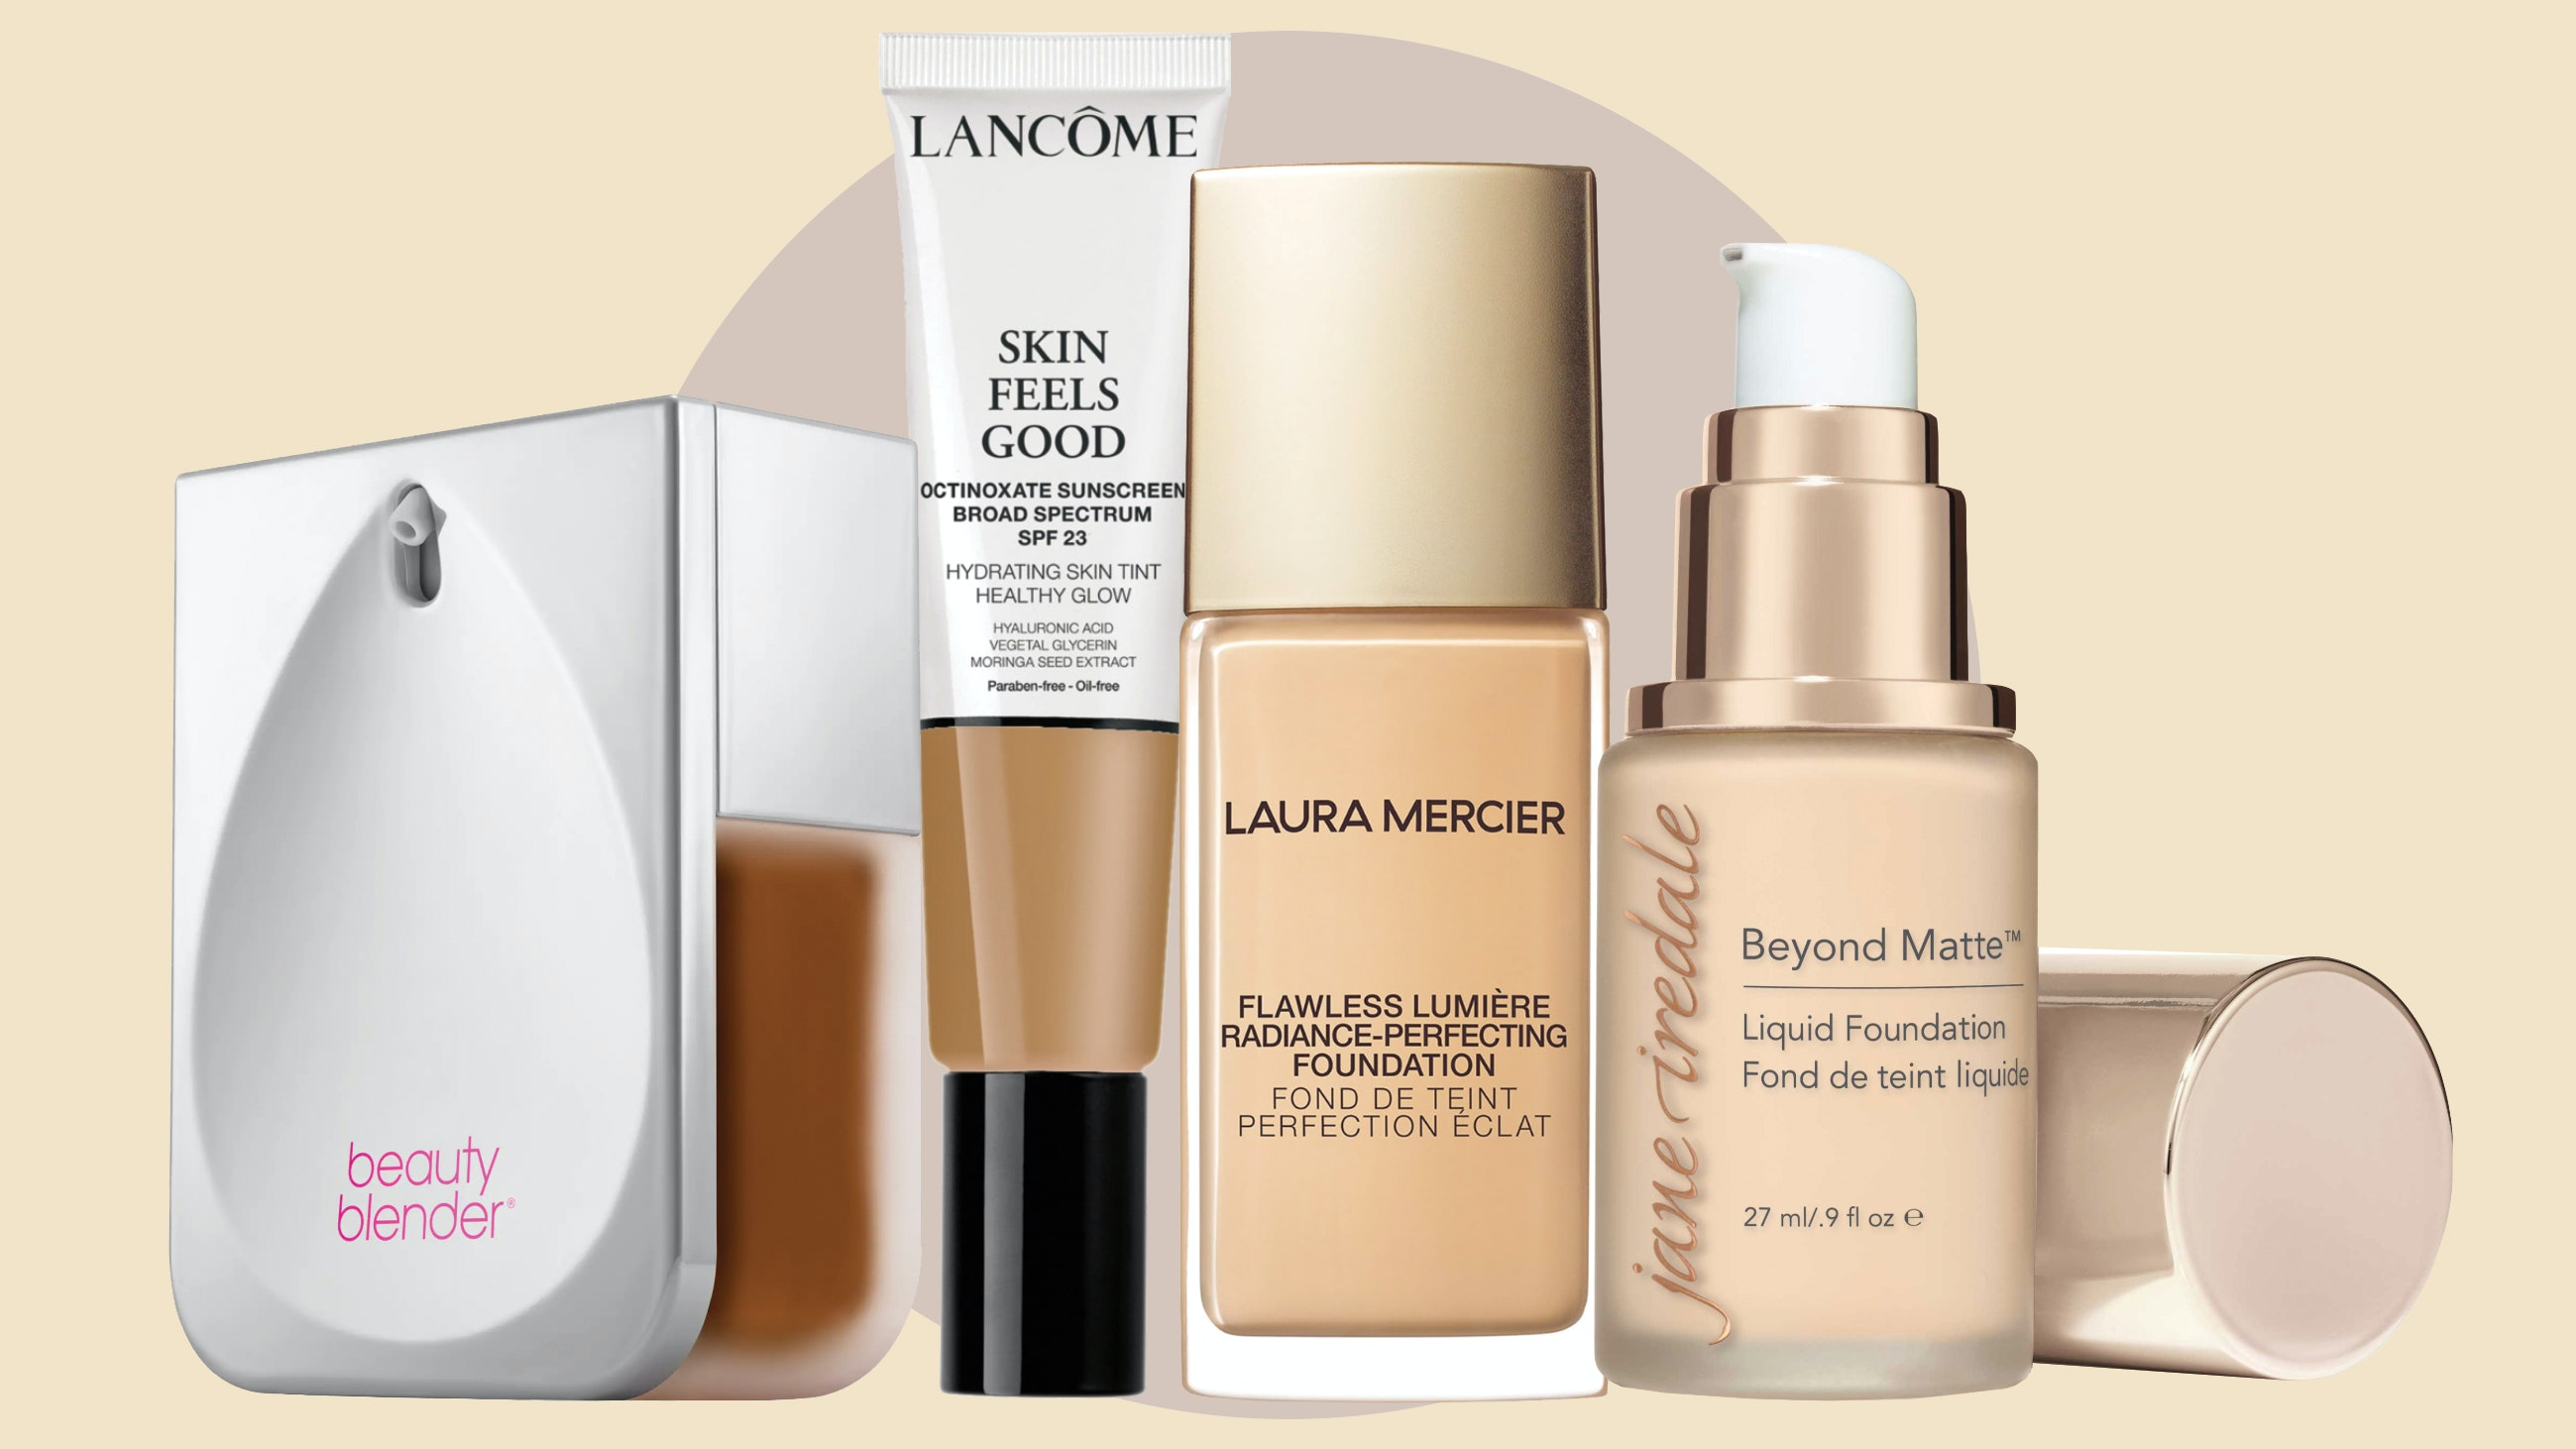 Foundations with hyaluronic acid